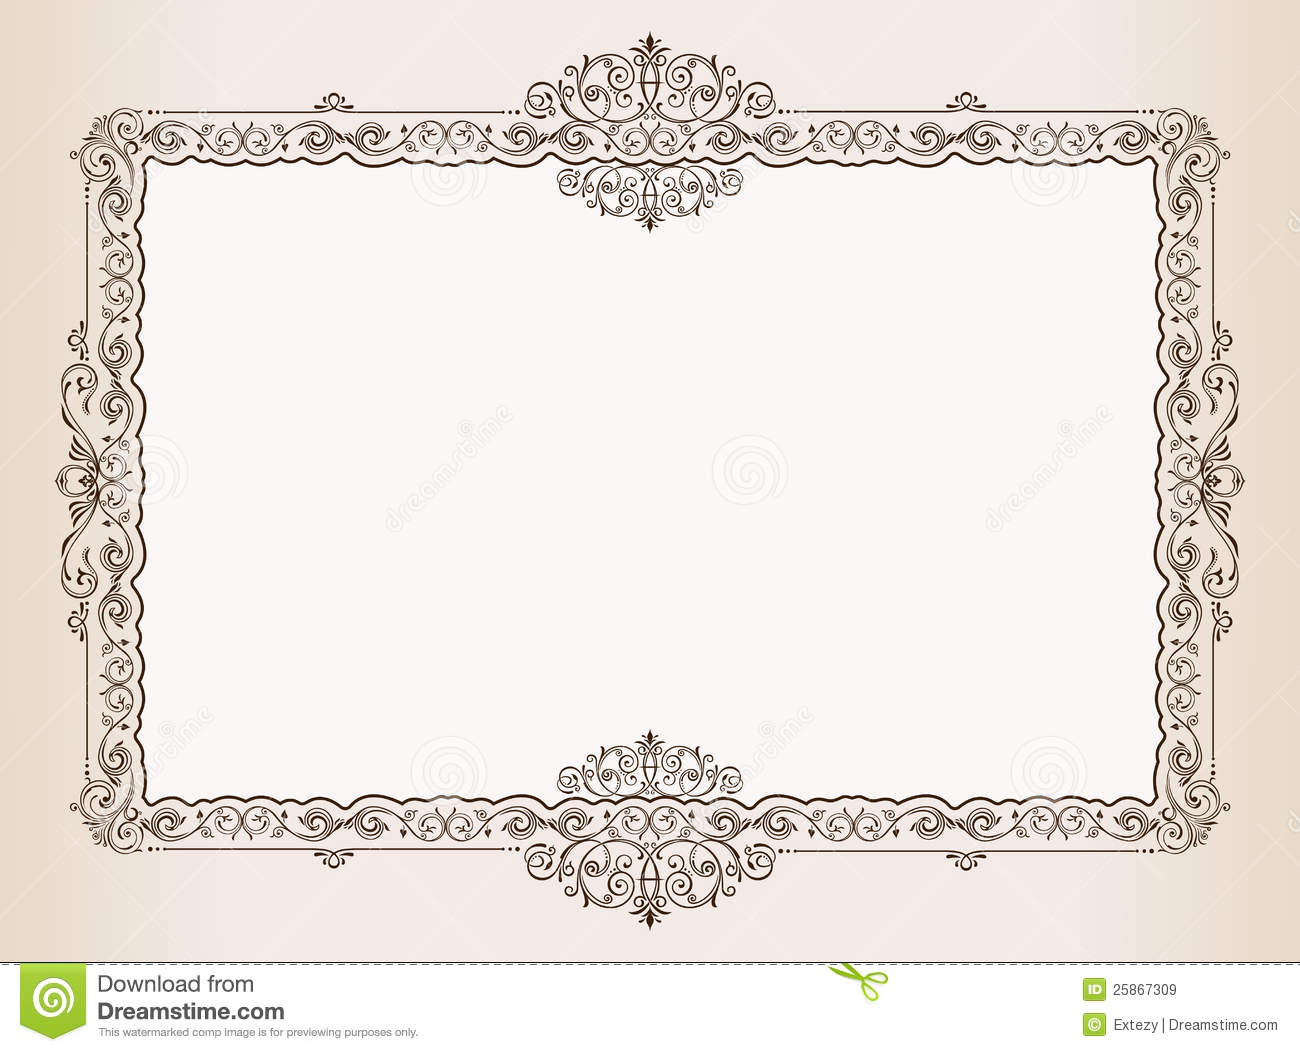 Shield design set royalty free stock photos image 5051988 - Ornamenten Koninklijk Document Royalty Vrije